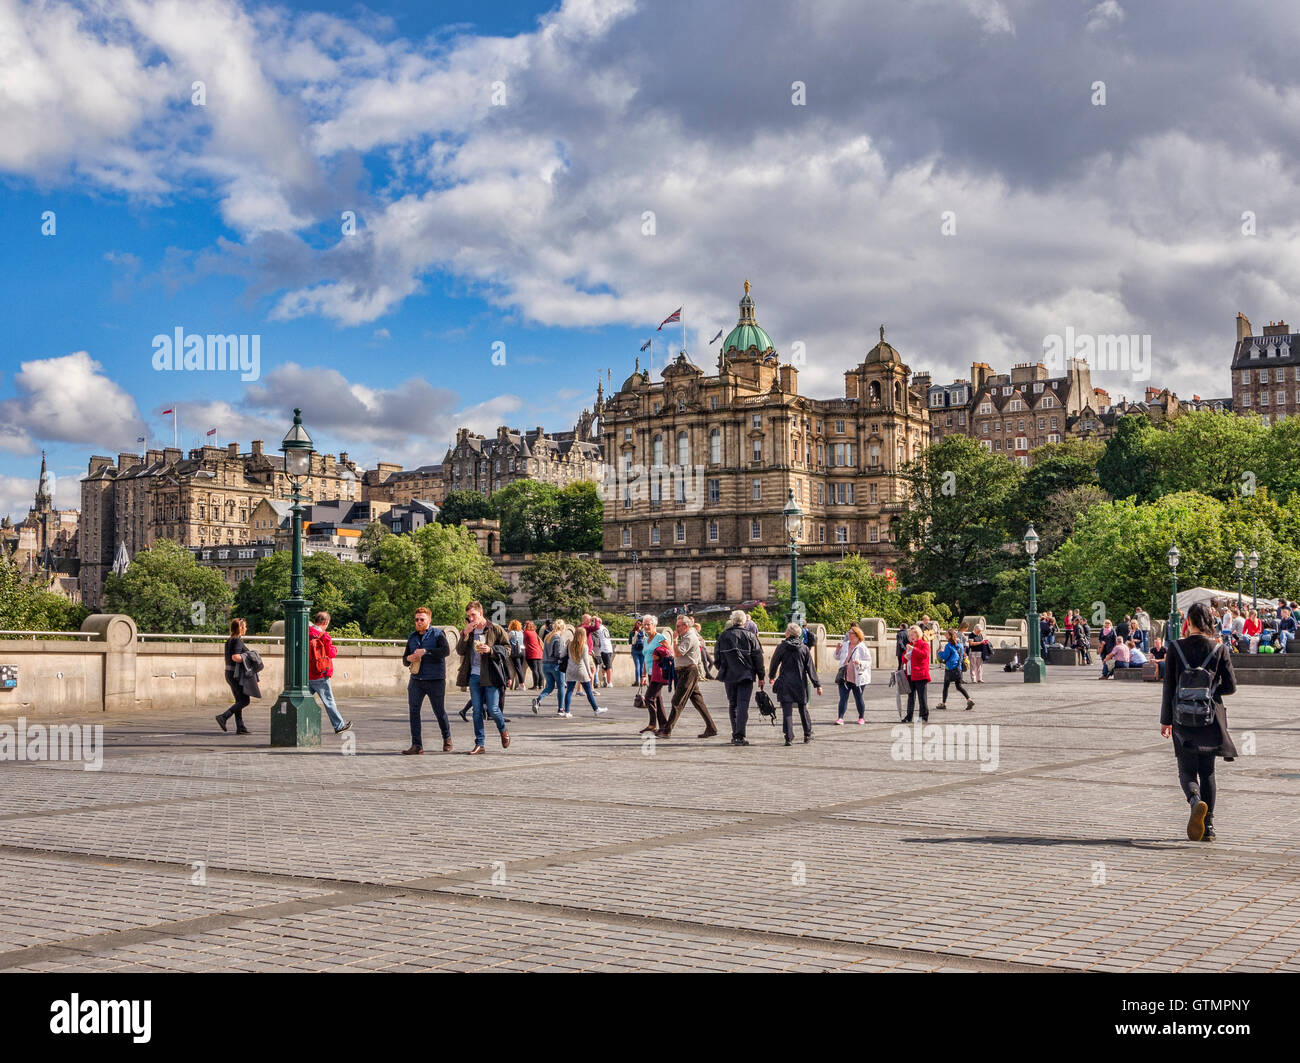 The Mound and the Old Town, Edinburgh, Scotland, UK - Stock Image